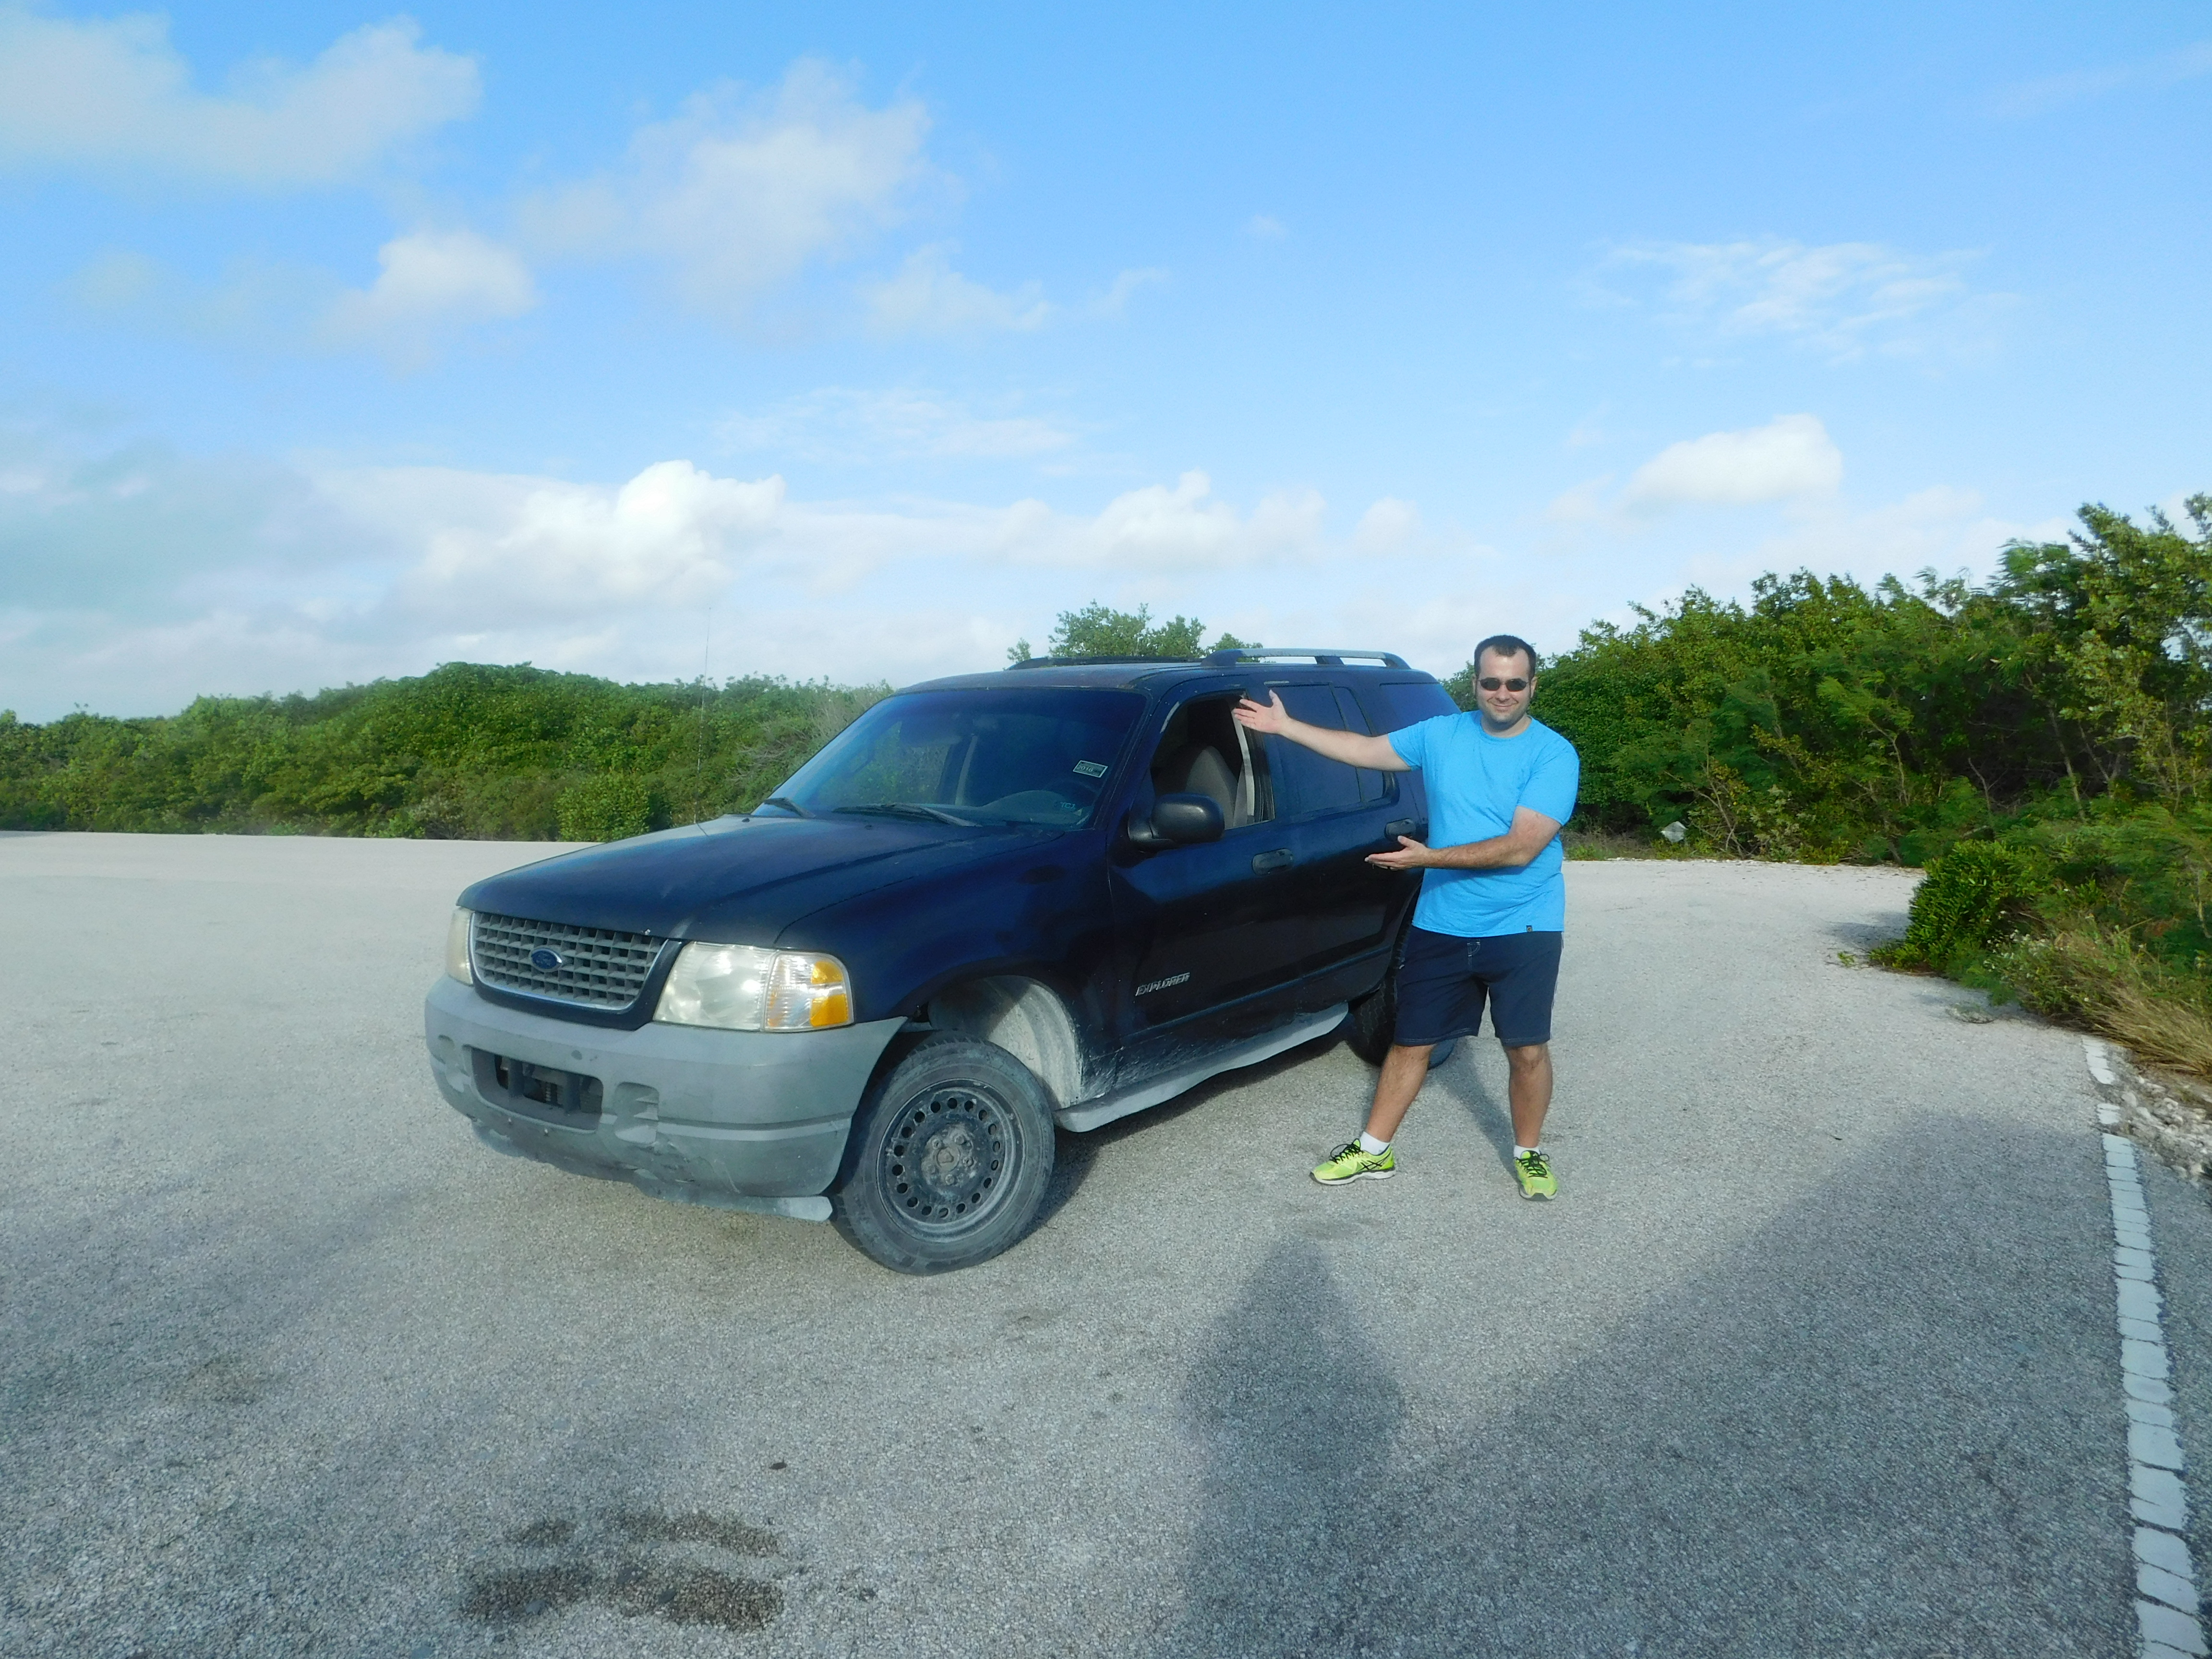 Our fancy rental car on our DIY adventure to North & Middle Caicos in the Turks and Caicos Islands.